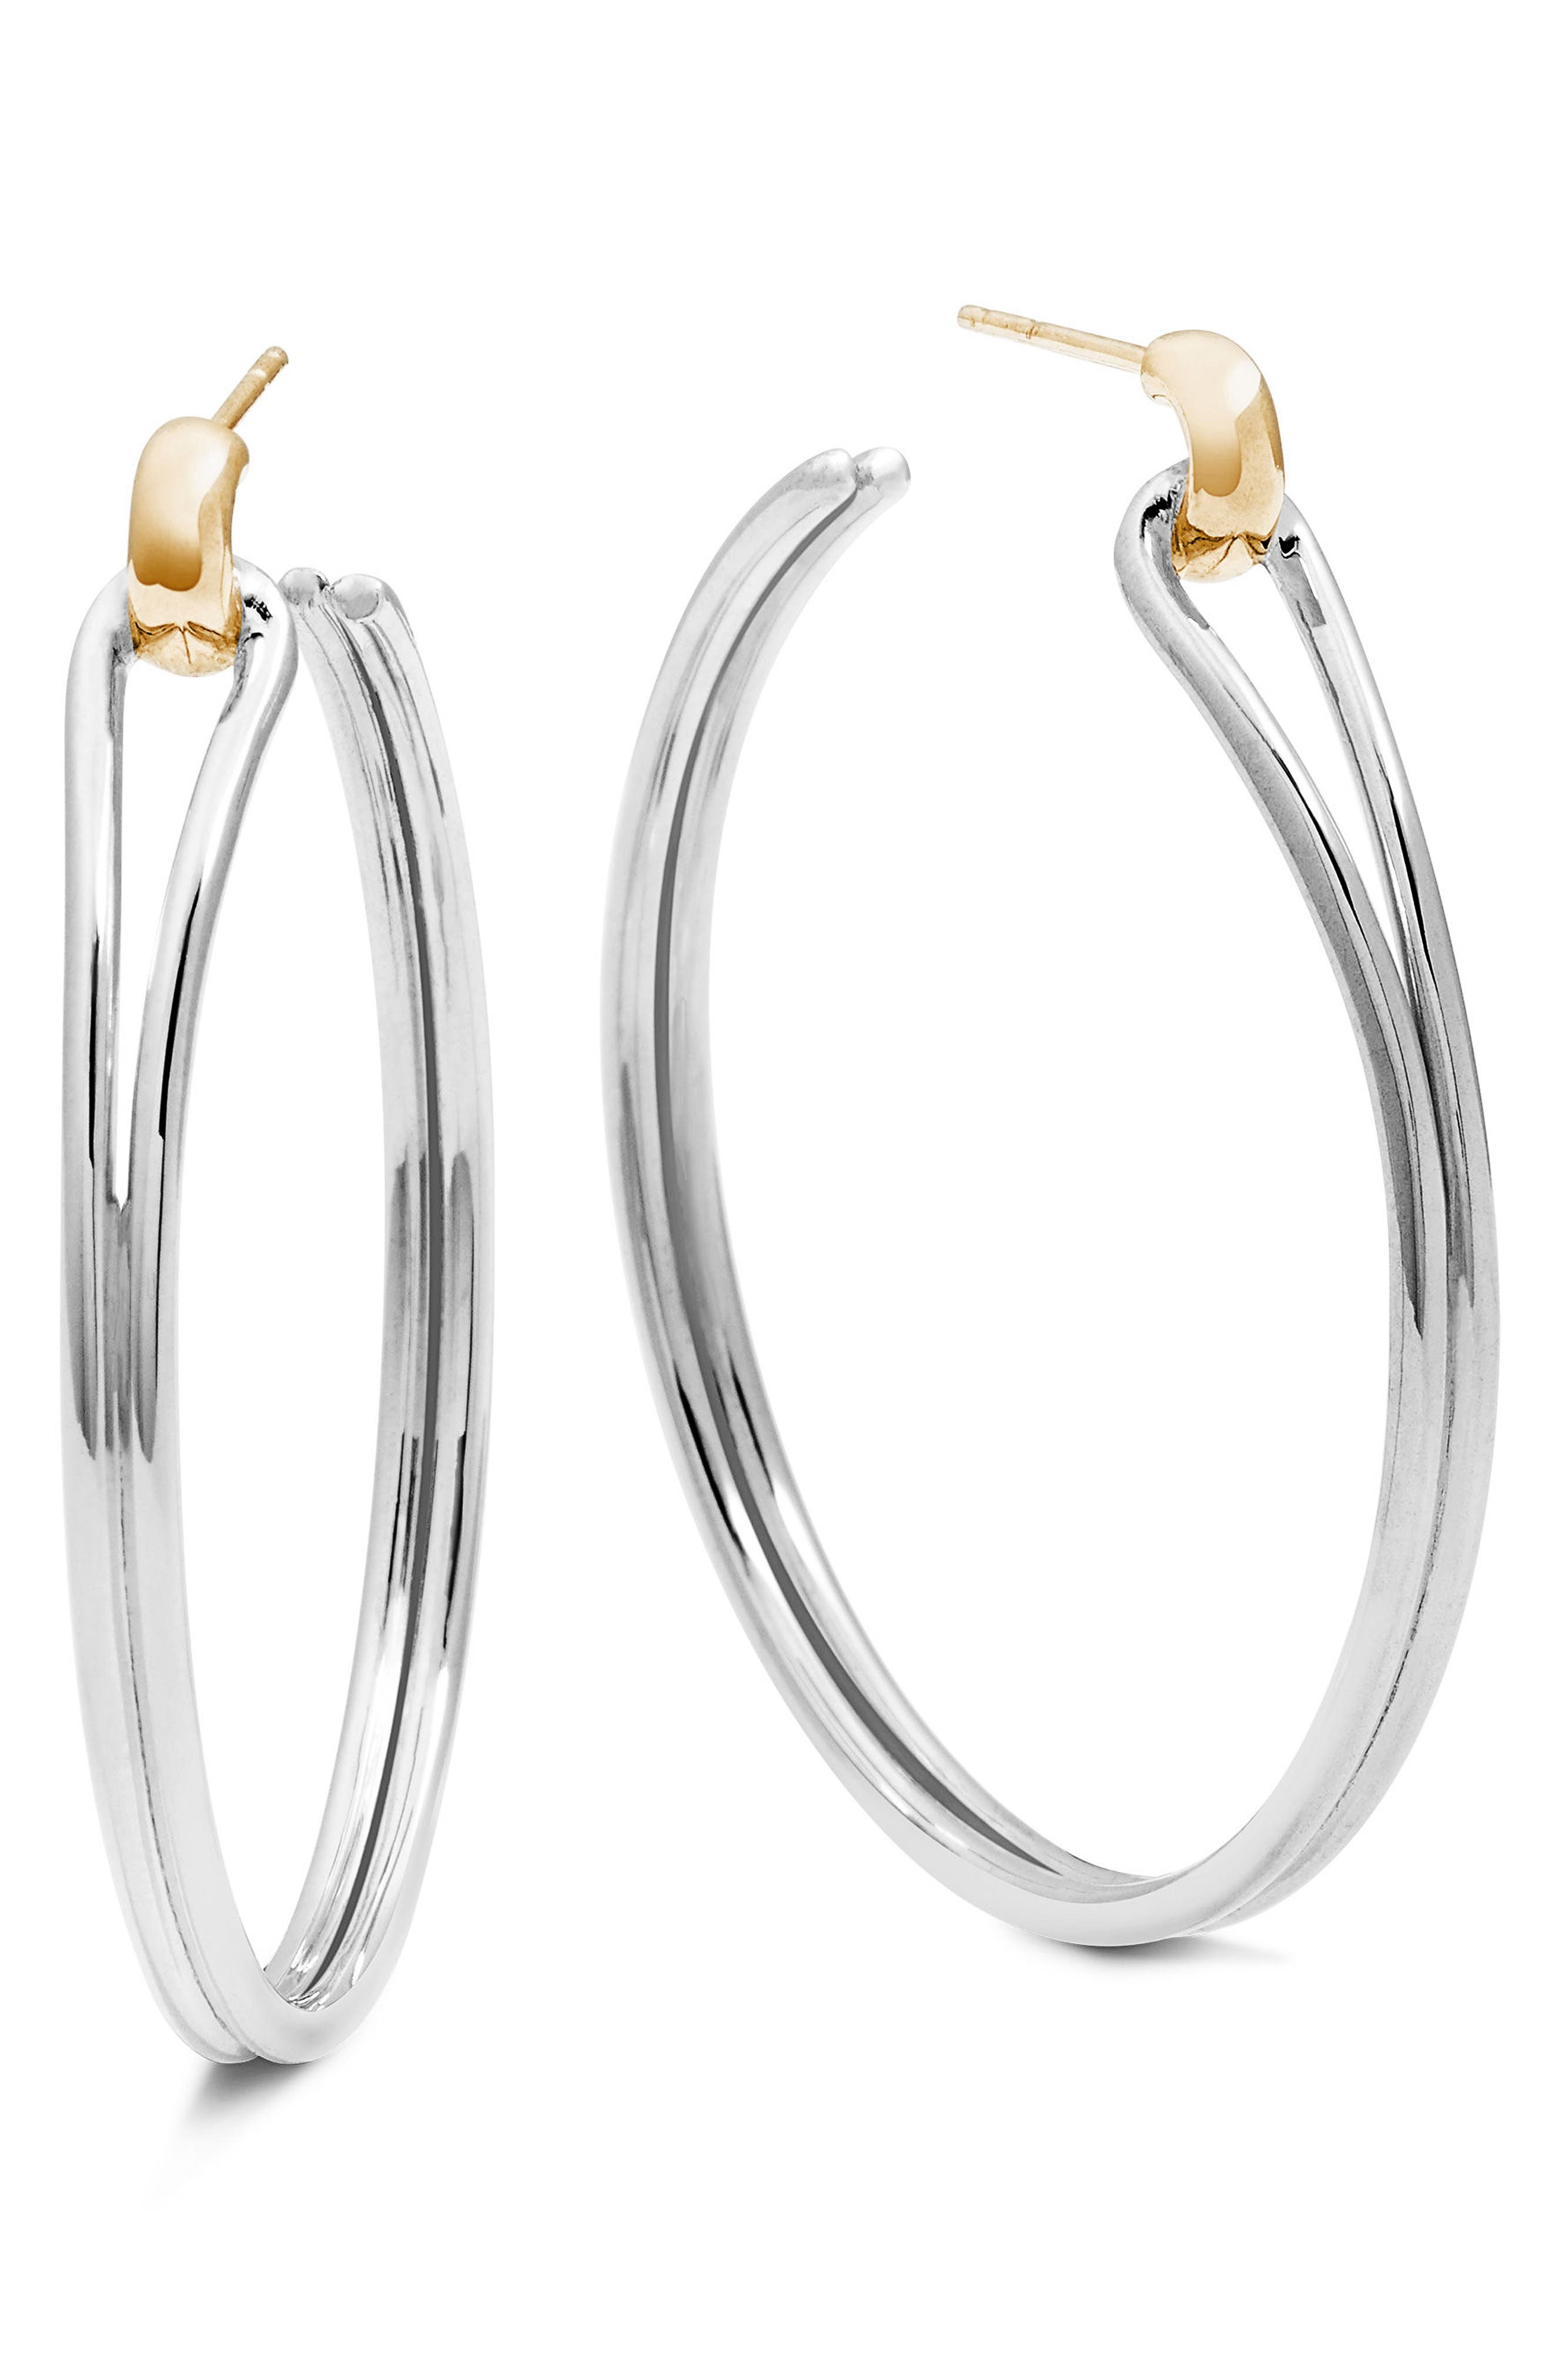 Lug Hoop Earrings,                         Main,                         color, Silver